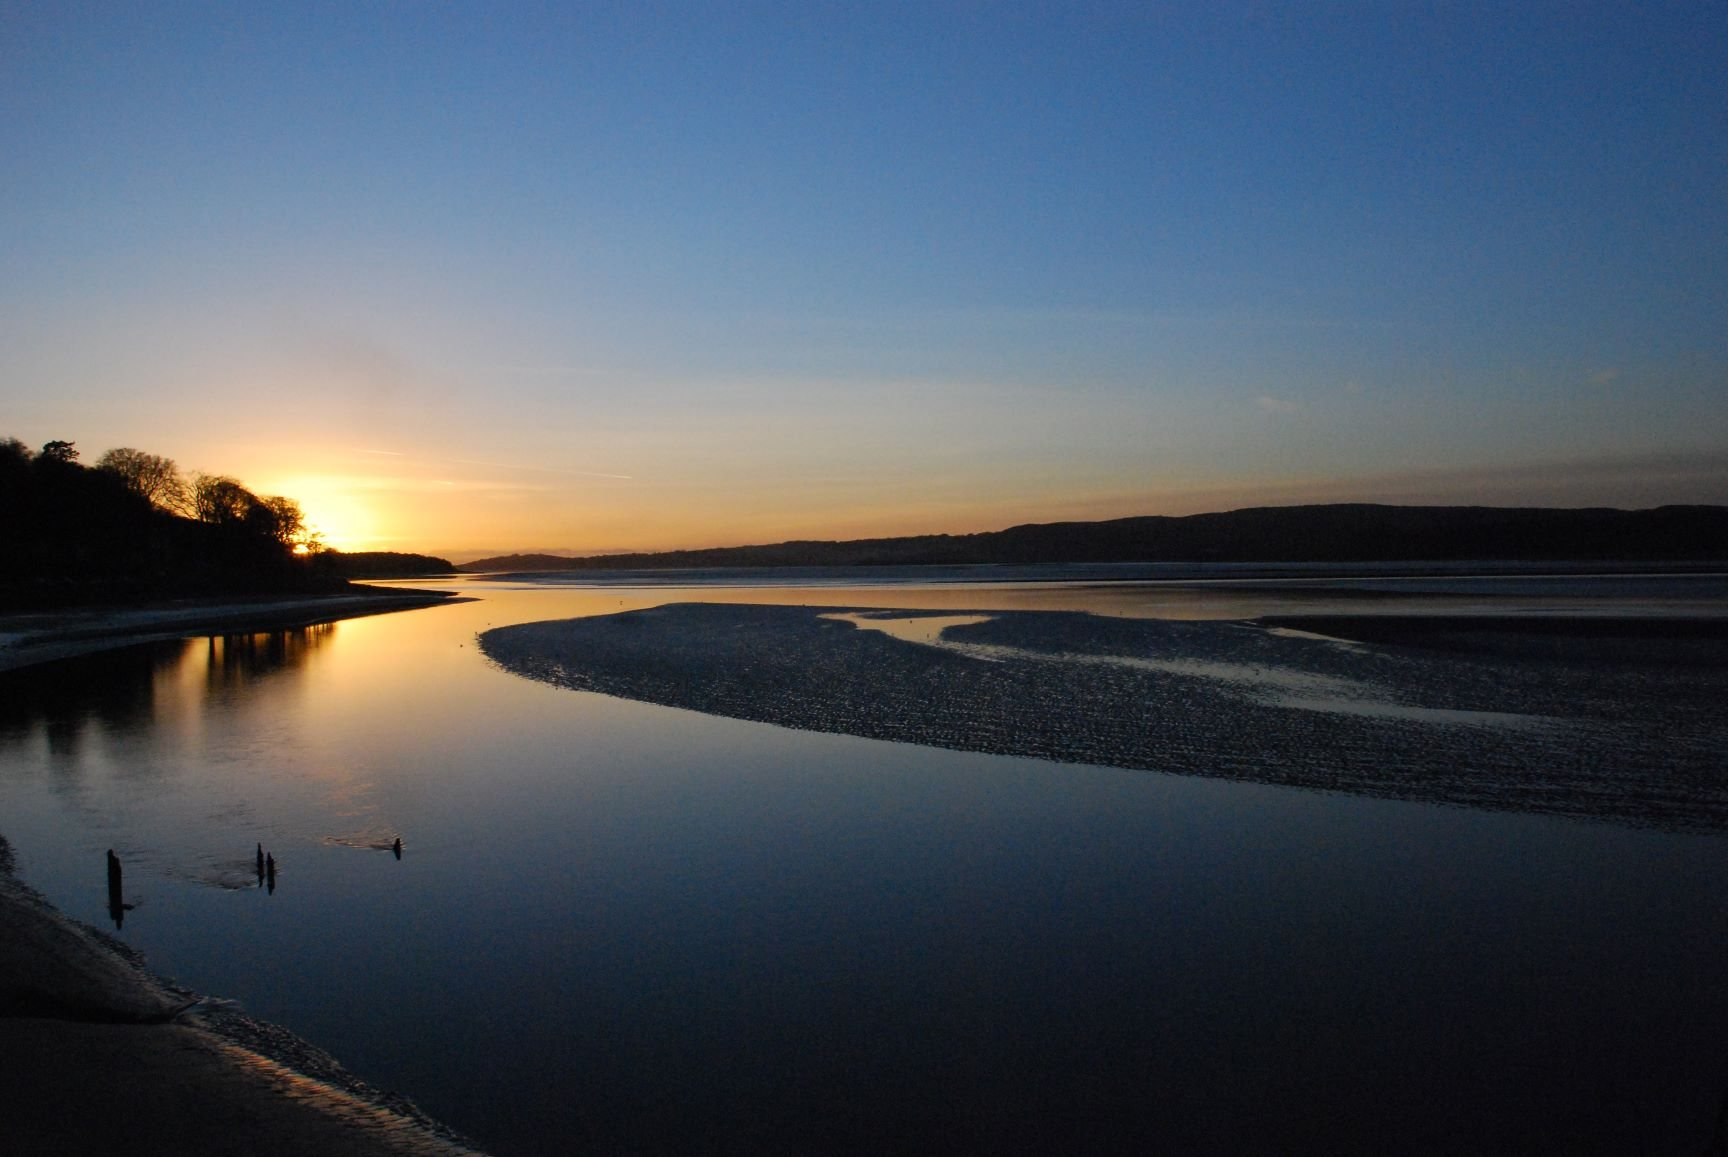 Sunset at Arnside